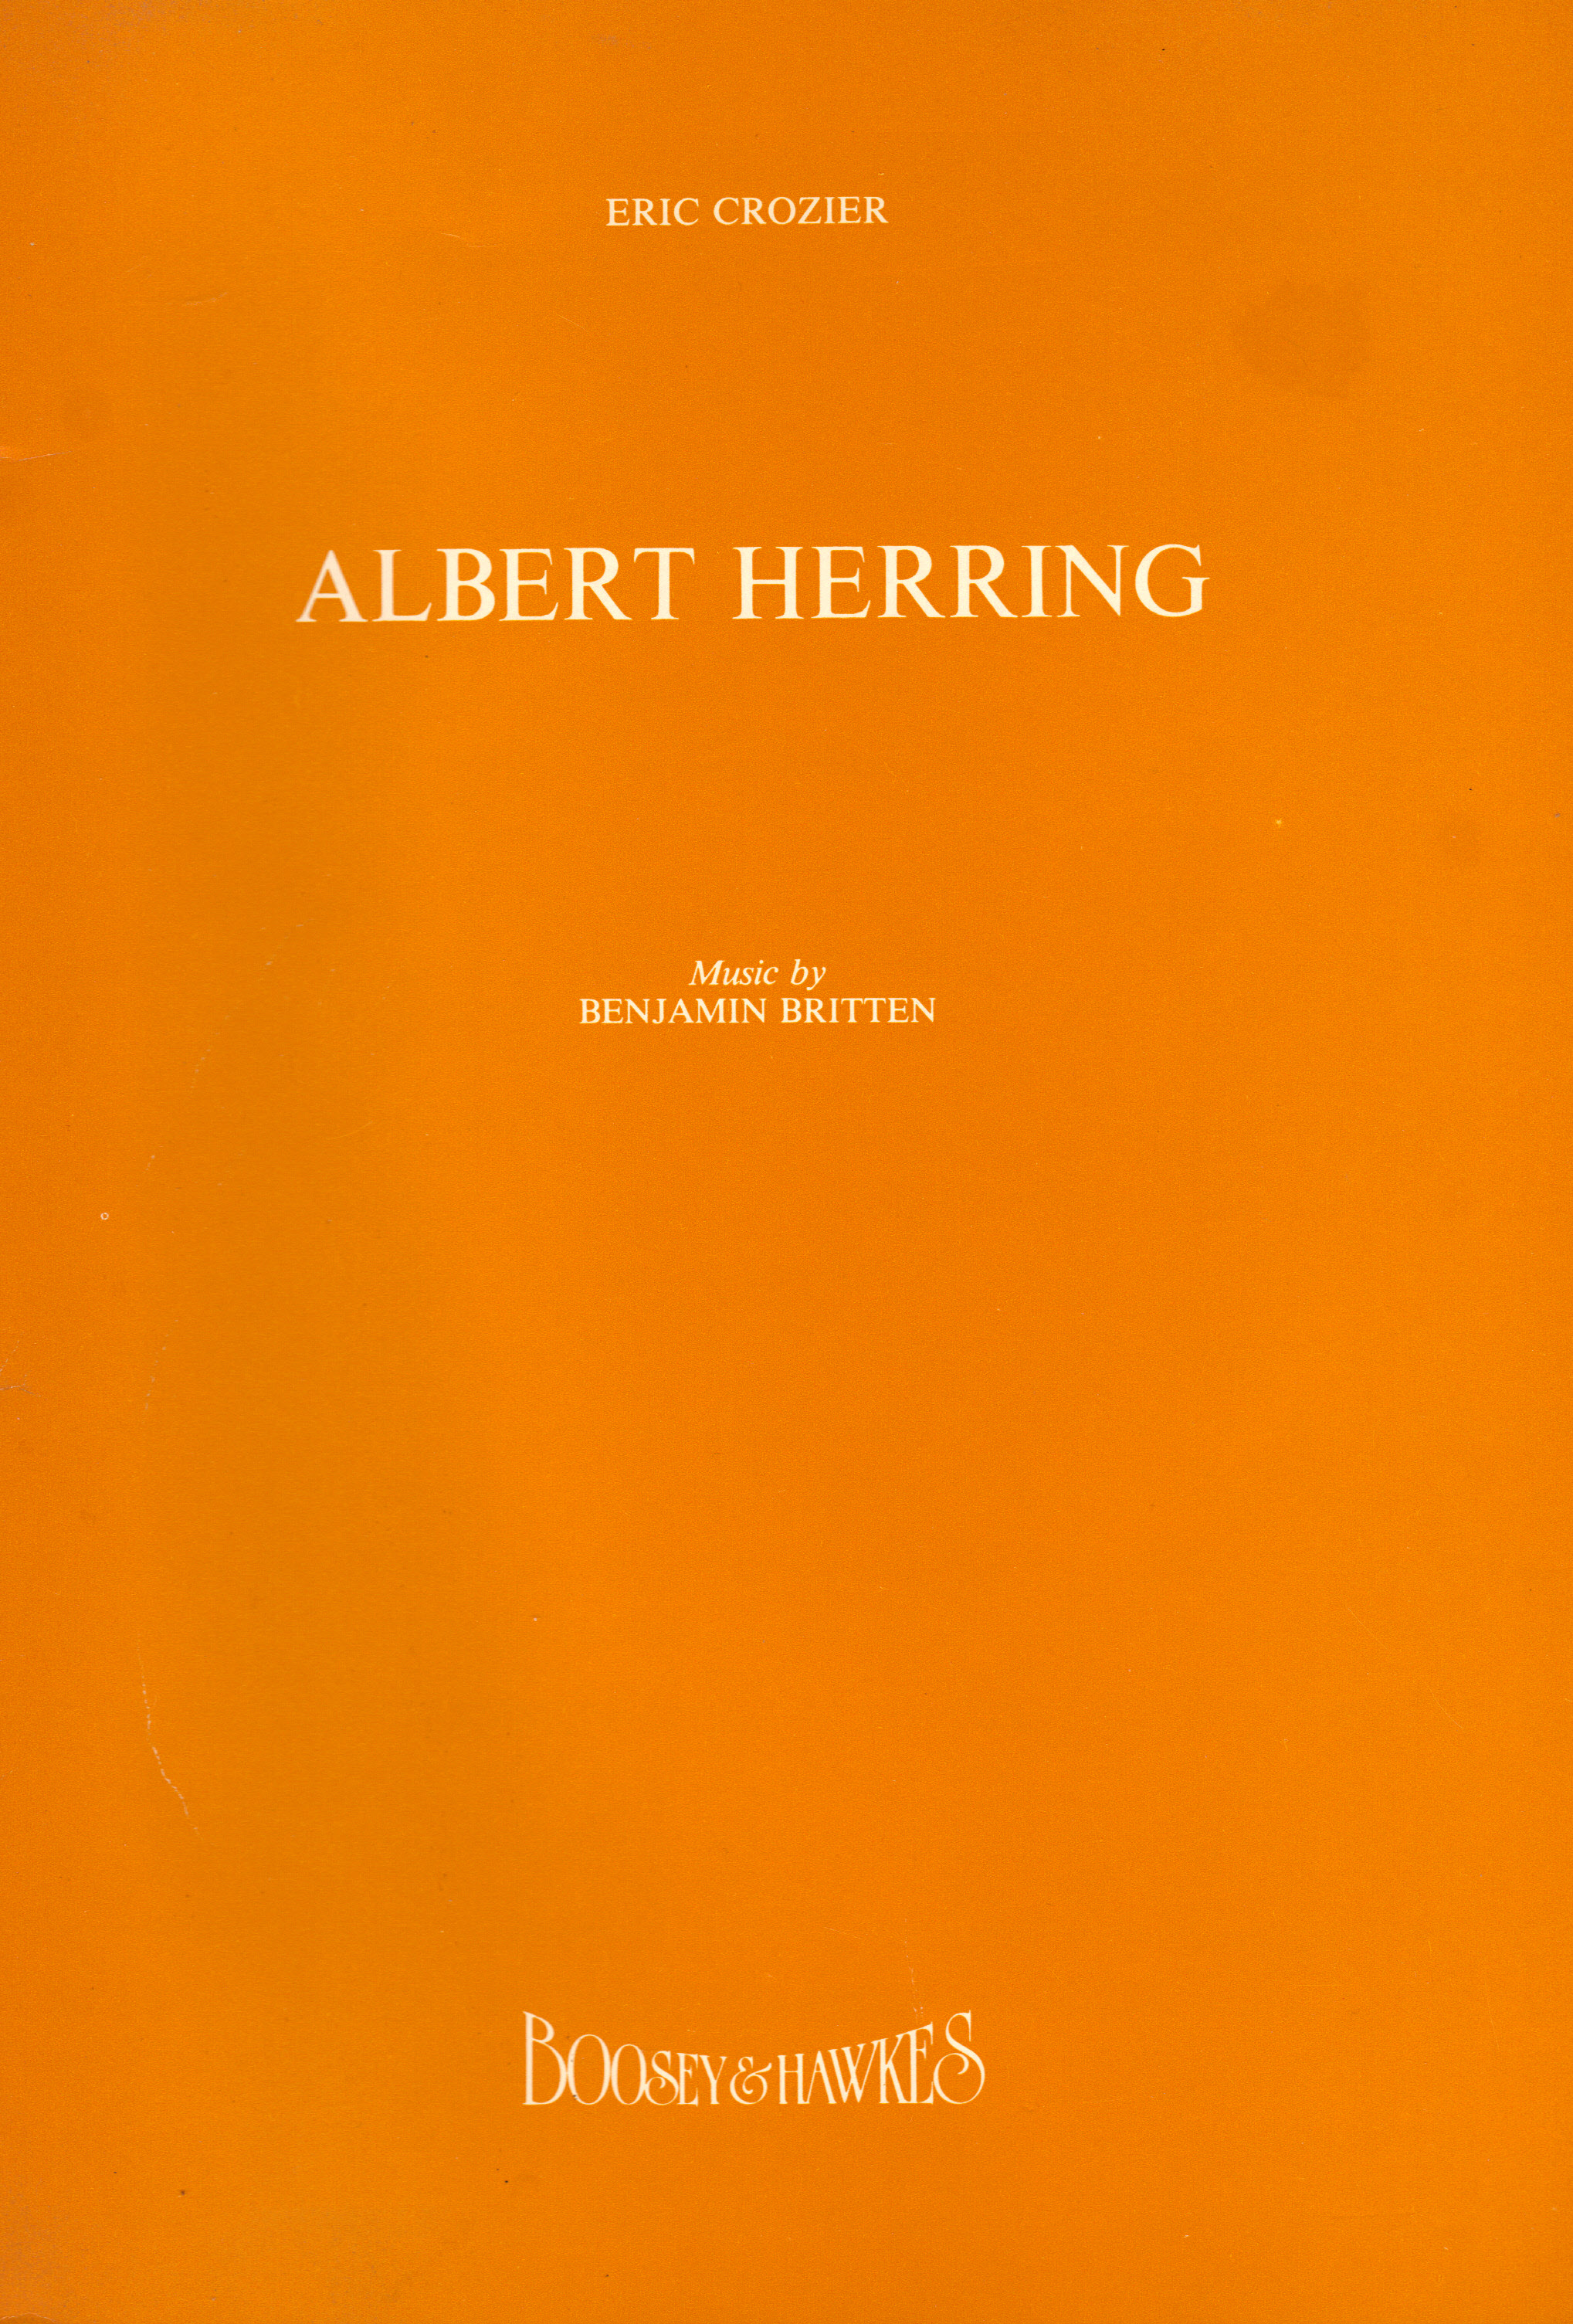 Image for ALBERT HERRING